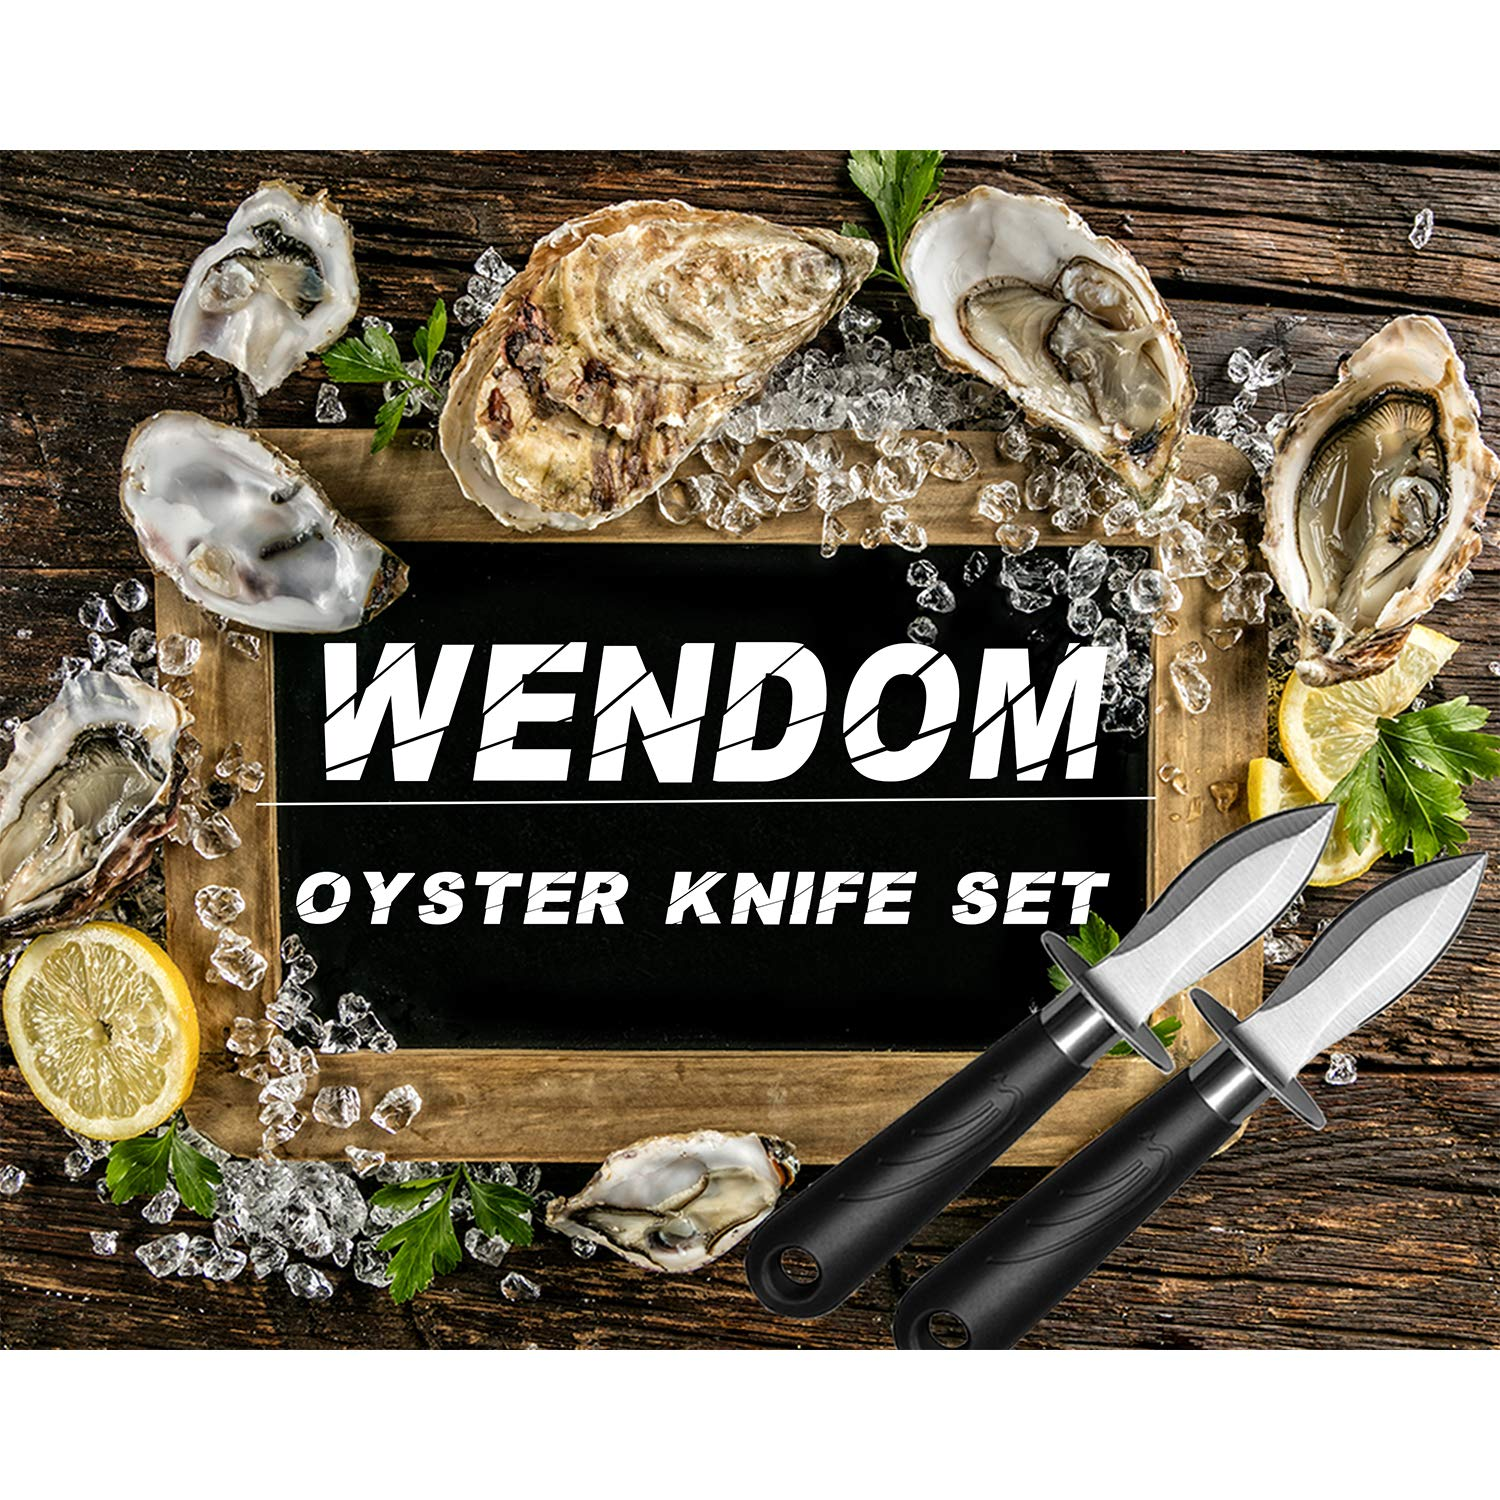 WENDOM Oyster Knife Shucker Set Oyster Shucking Knife and Gloves Cut Resistant Level 5 Protection Seafood Opener Kit Tools Gift(2knifes+1Glove) by WENDOM (Image #5)